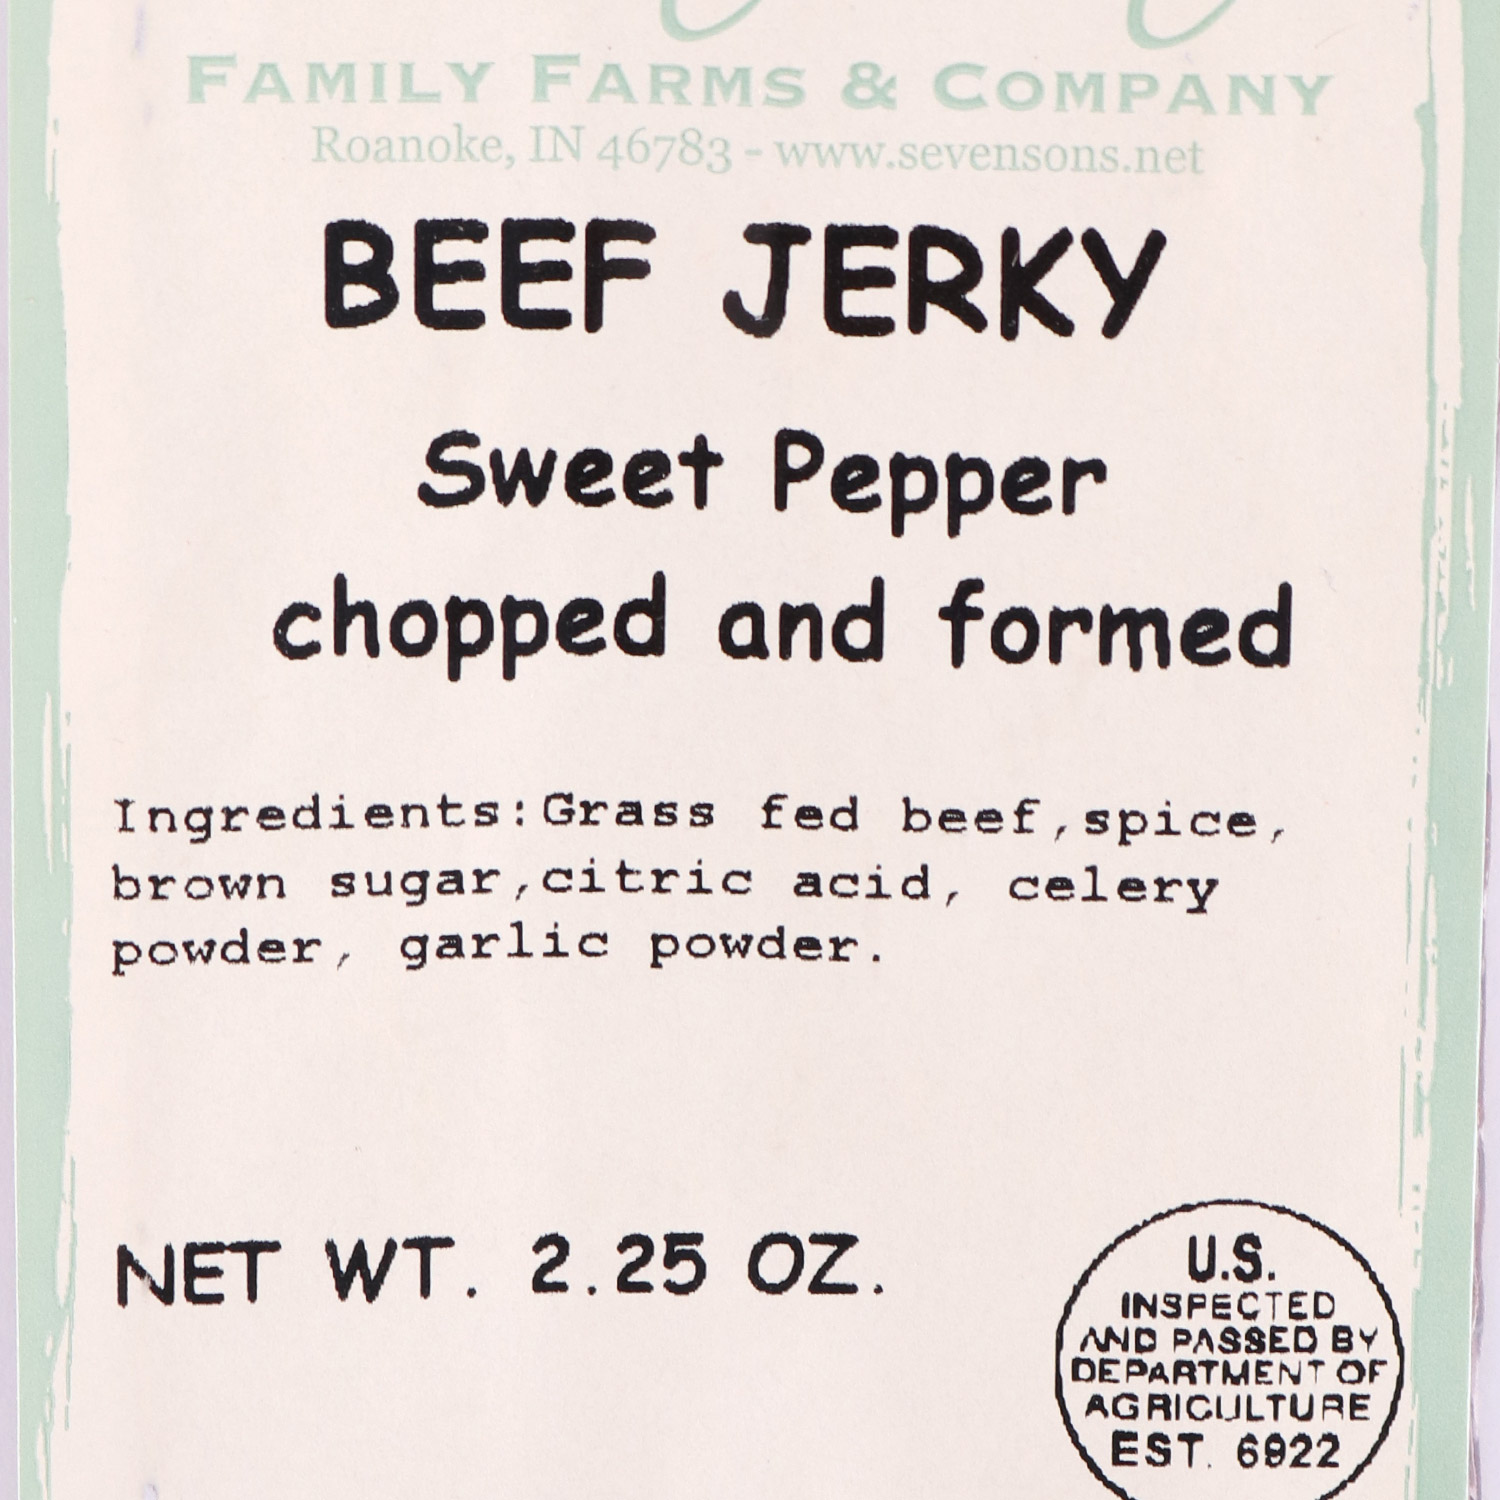 Beef Jerky, Sweet Pepper